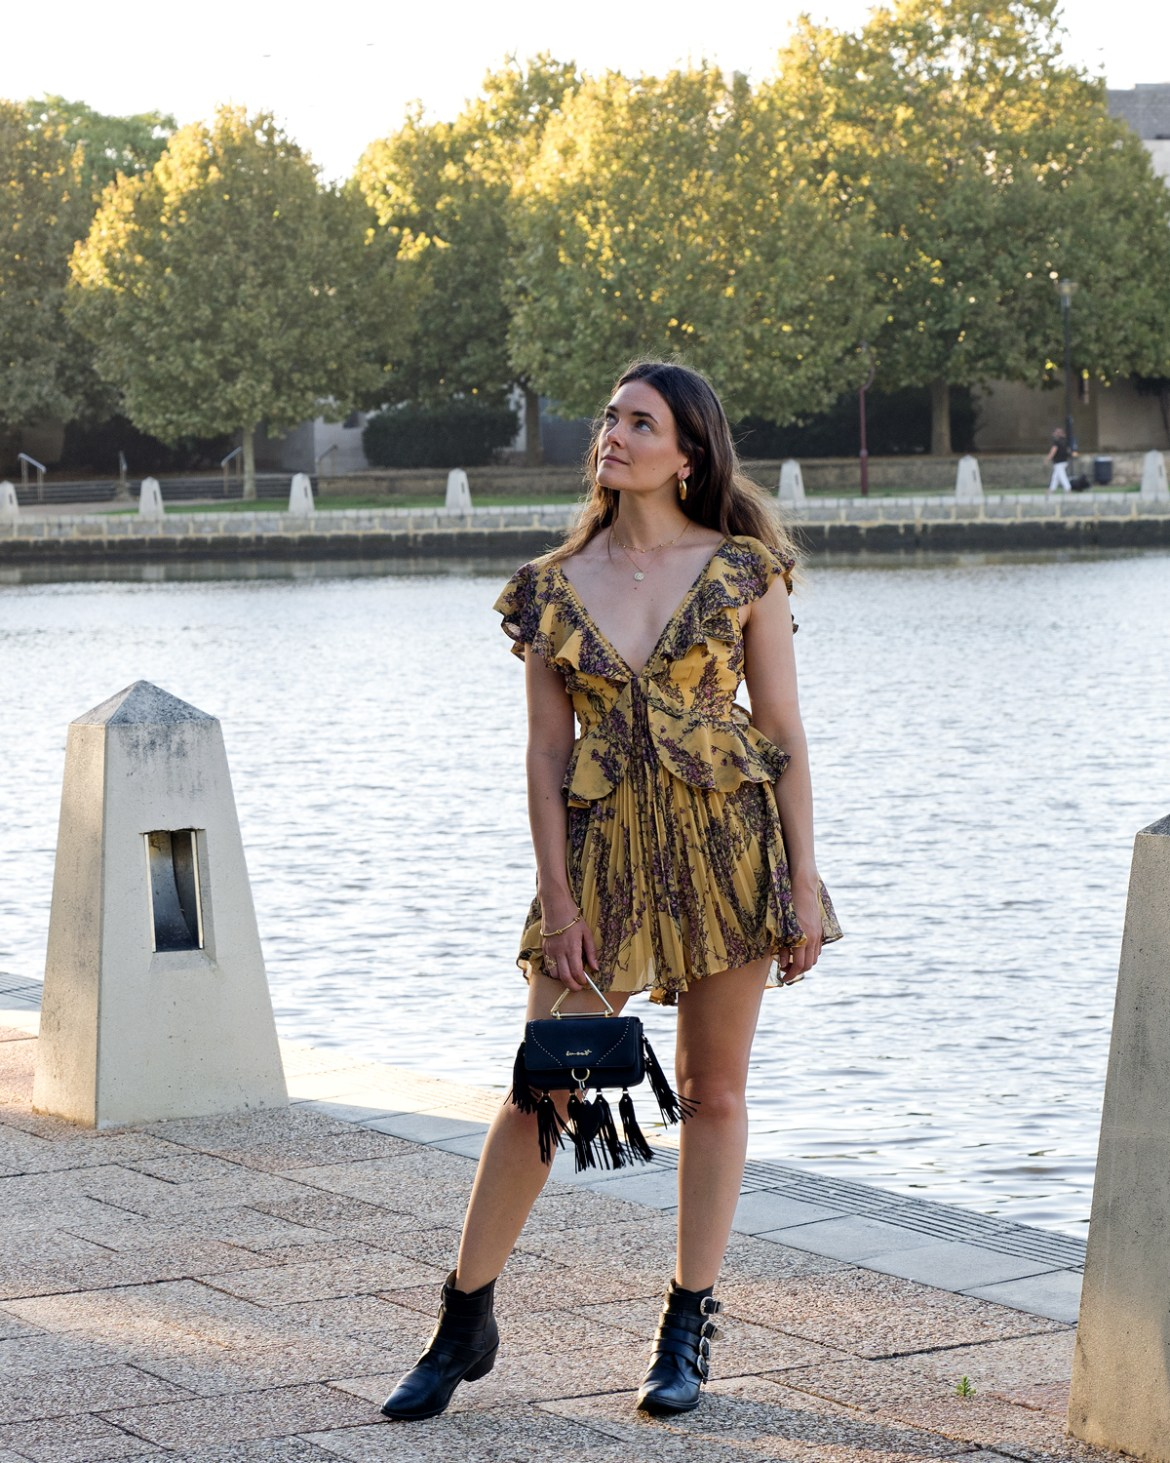 Light Up playsuit in mustard yellow from Keepsake the label worn by fashion blogger Inspiring Wit for 2018 Valentine's Day edit